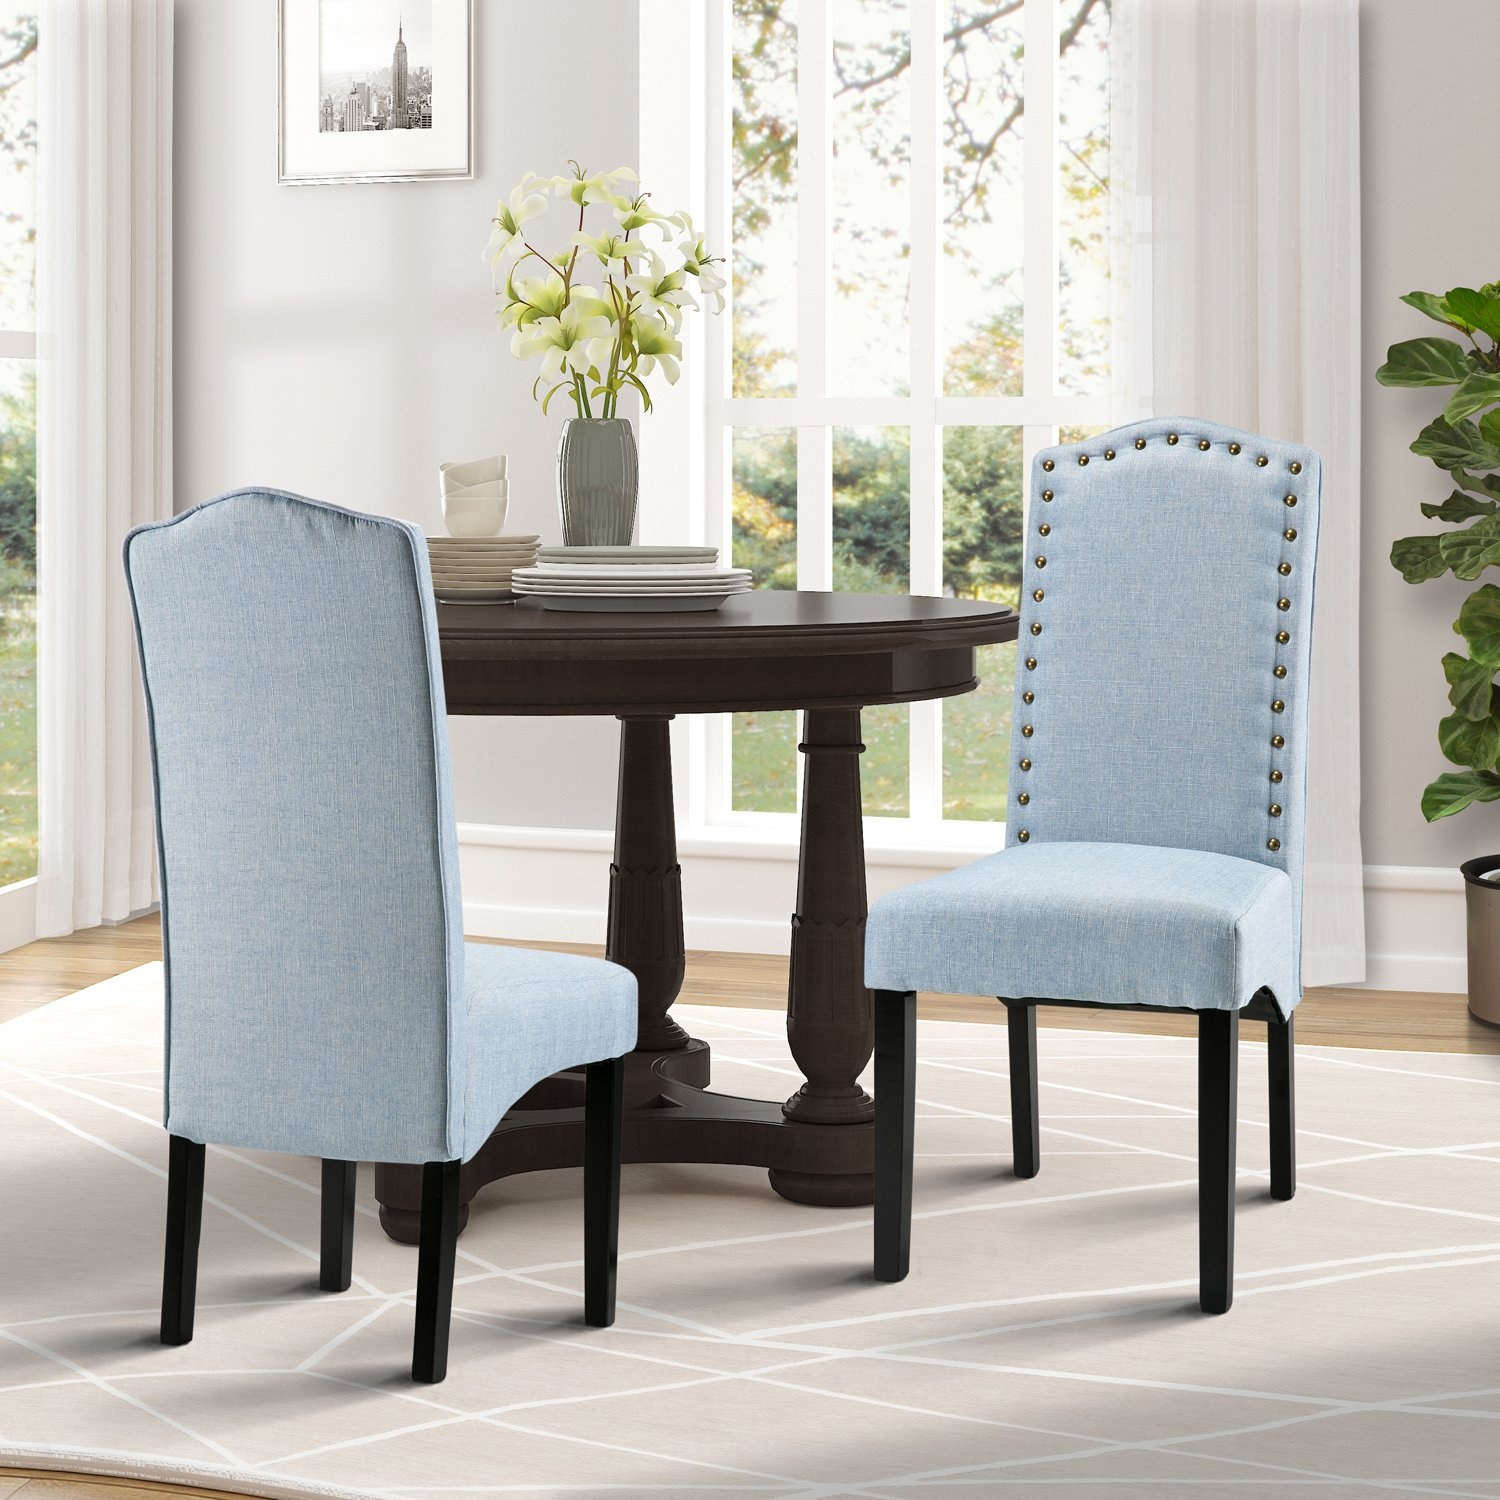 merax fabric accent chair dining room with solid wood legs set light blue furniture chairs tall patio table push back recliner antique black side nightstand bedside white chest